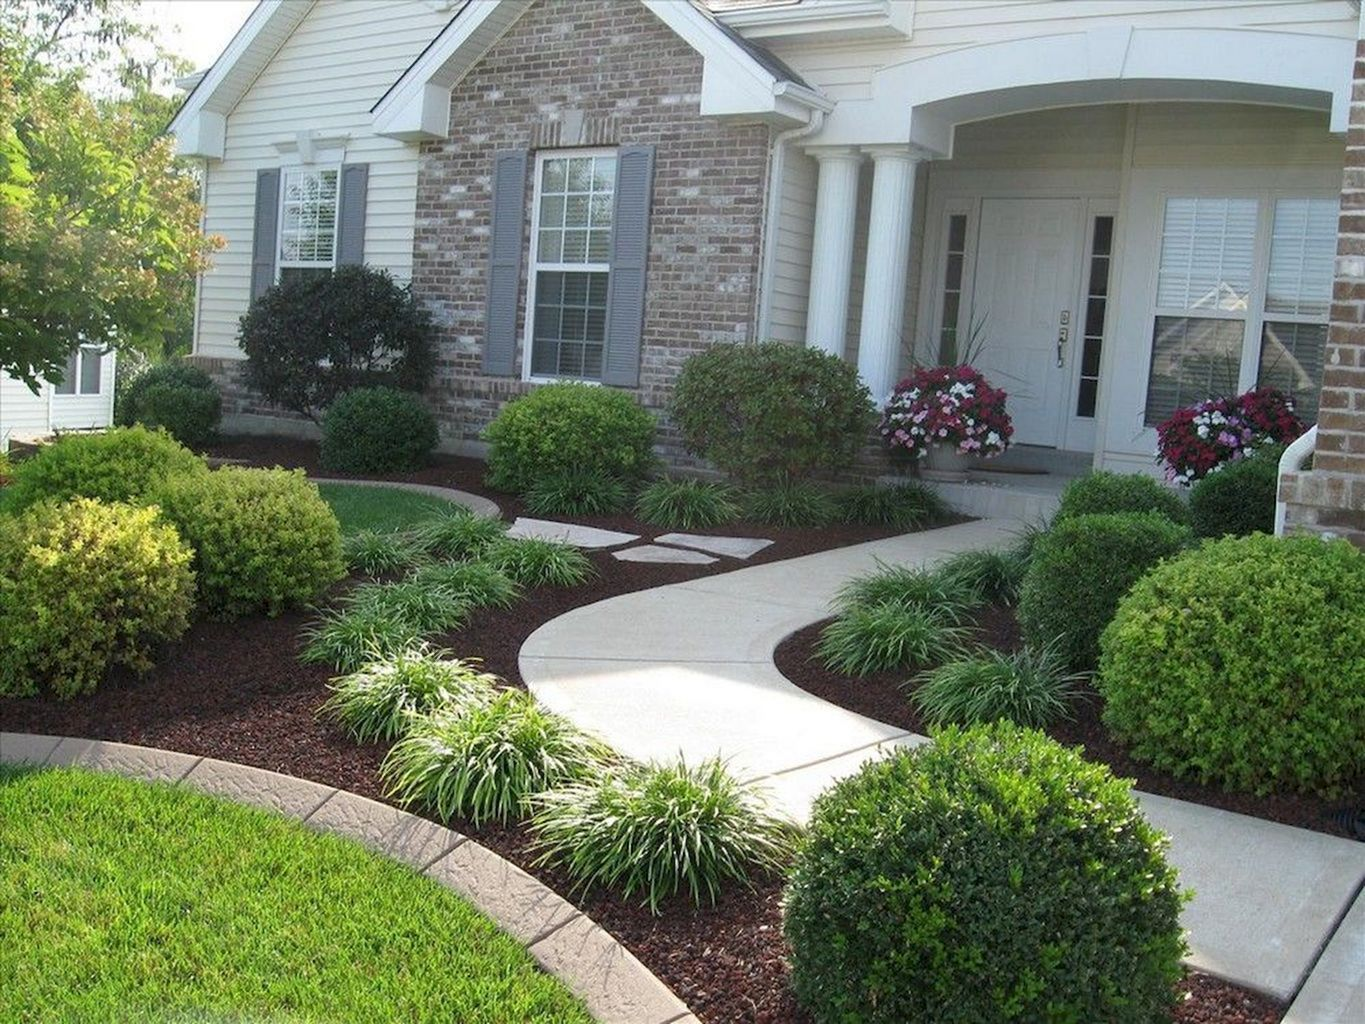 35 most beautiful front yard landscaping ideas for on most beautiful backyard landscaping ideas id=85548